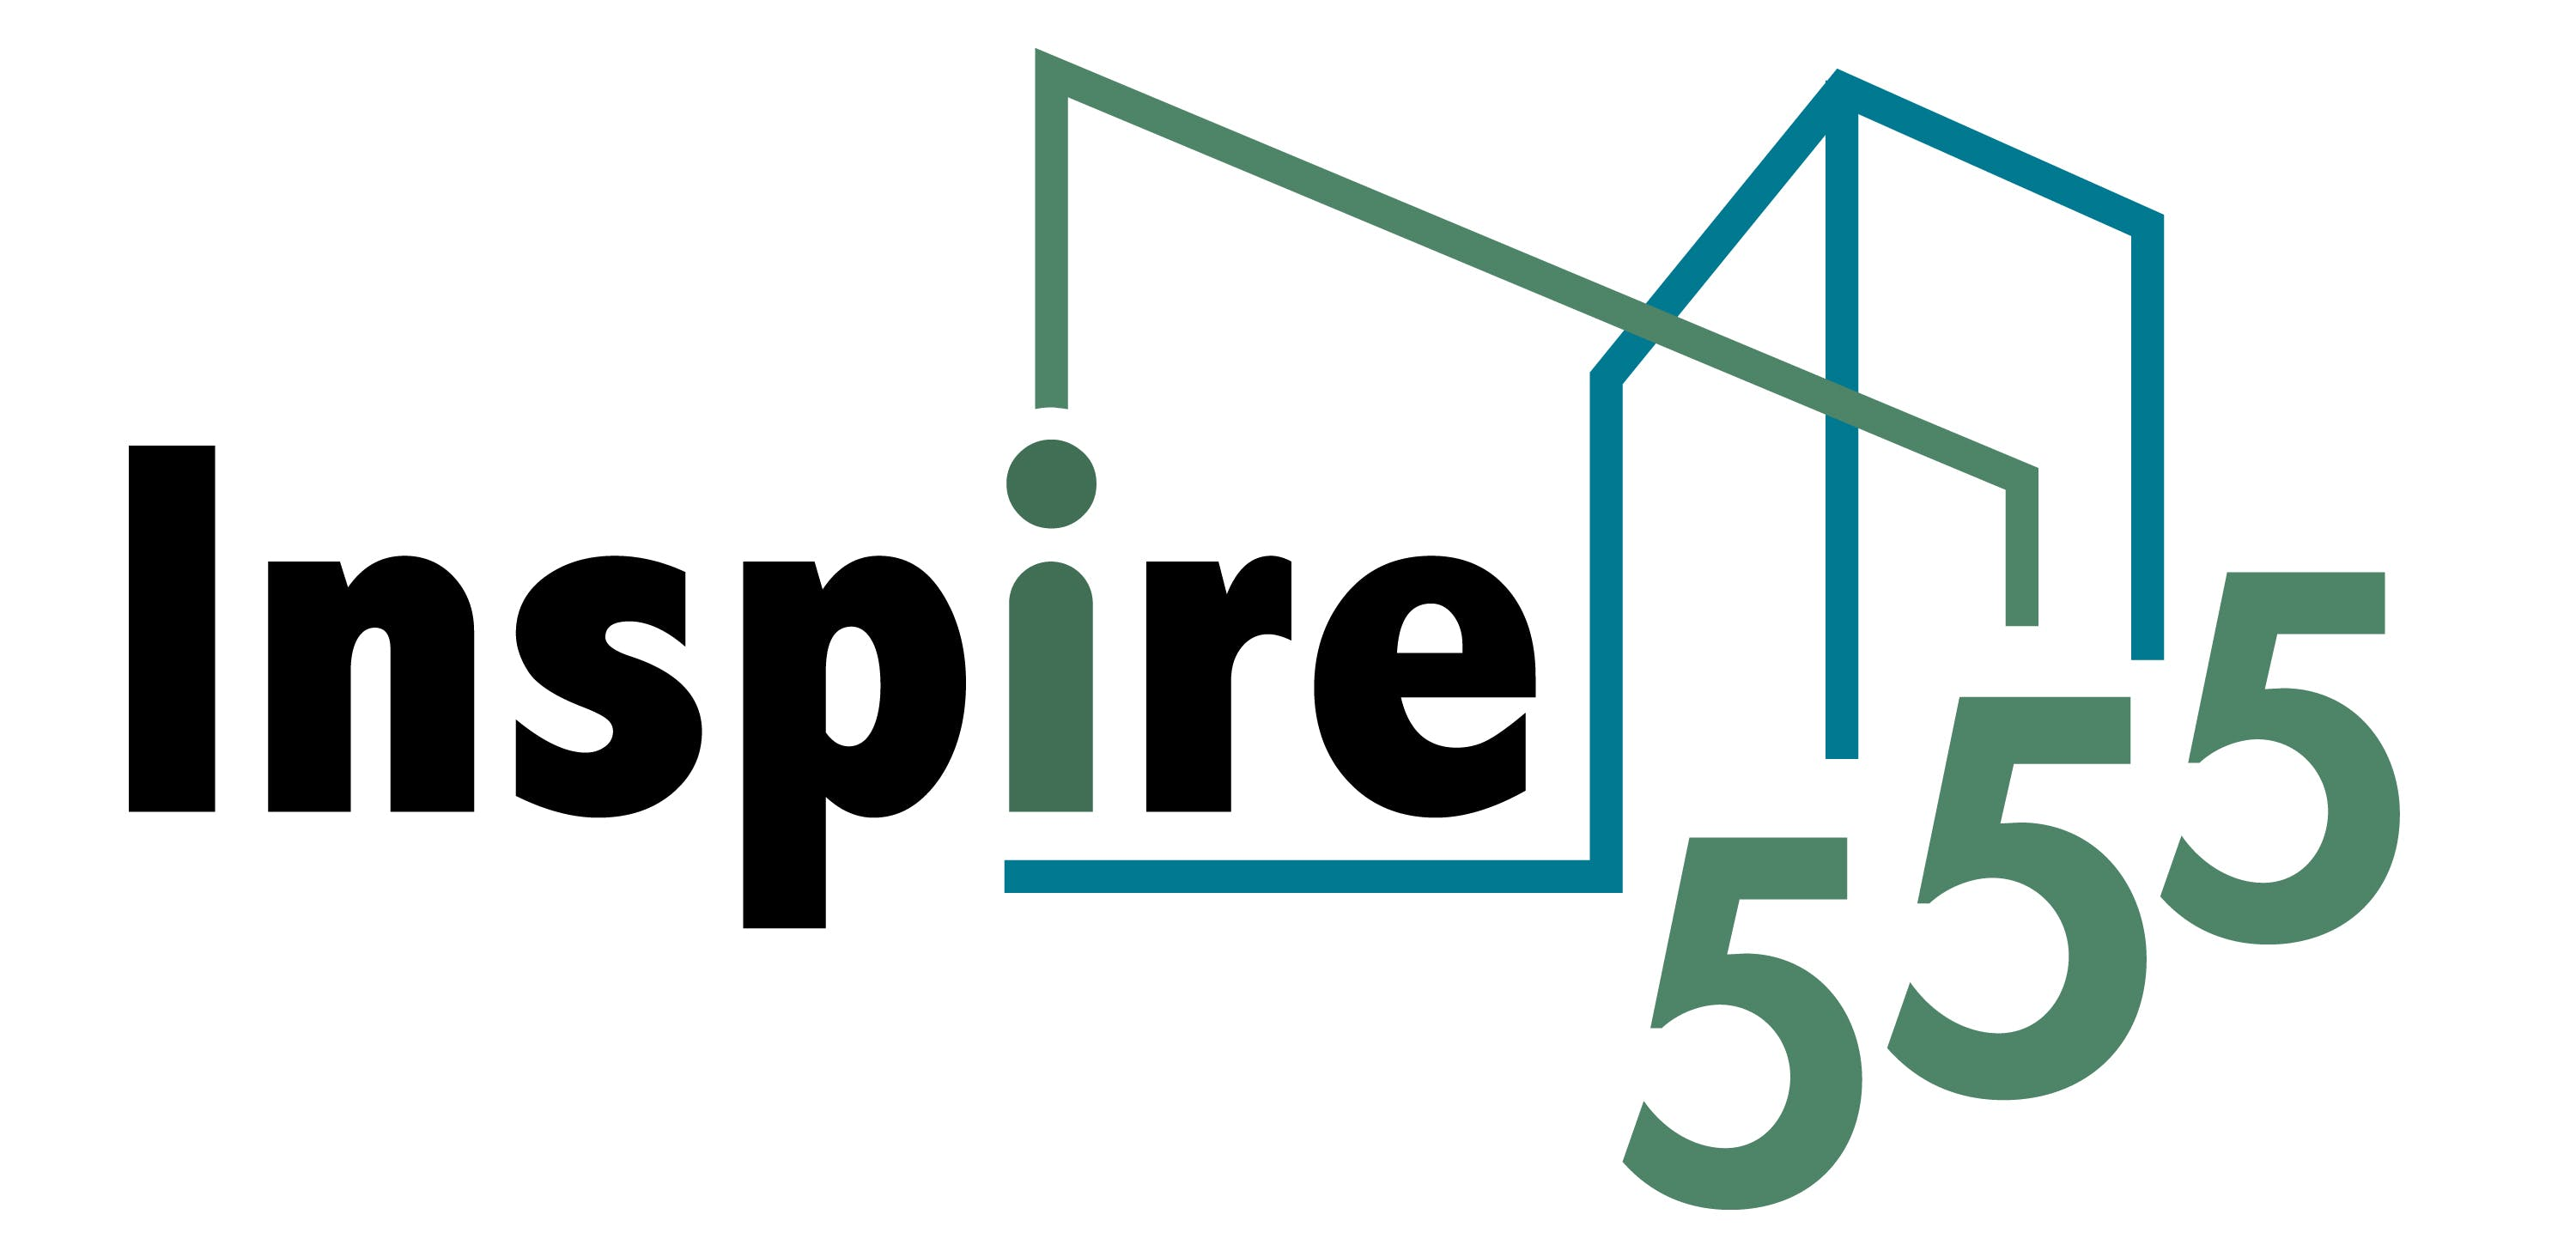 Visual identifier for Inspire 555